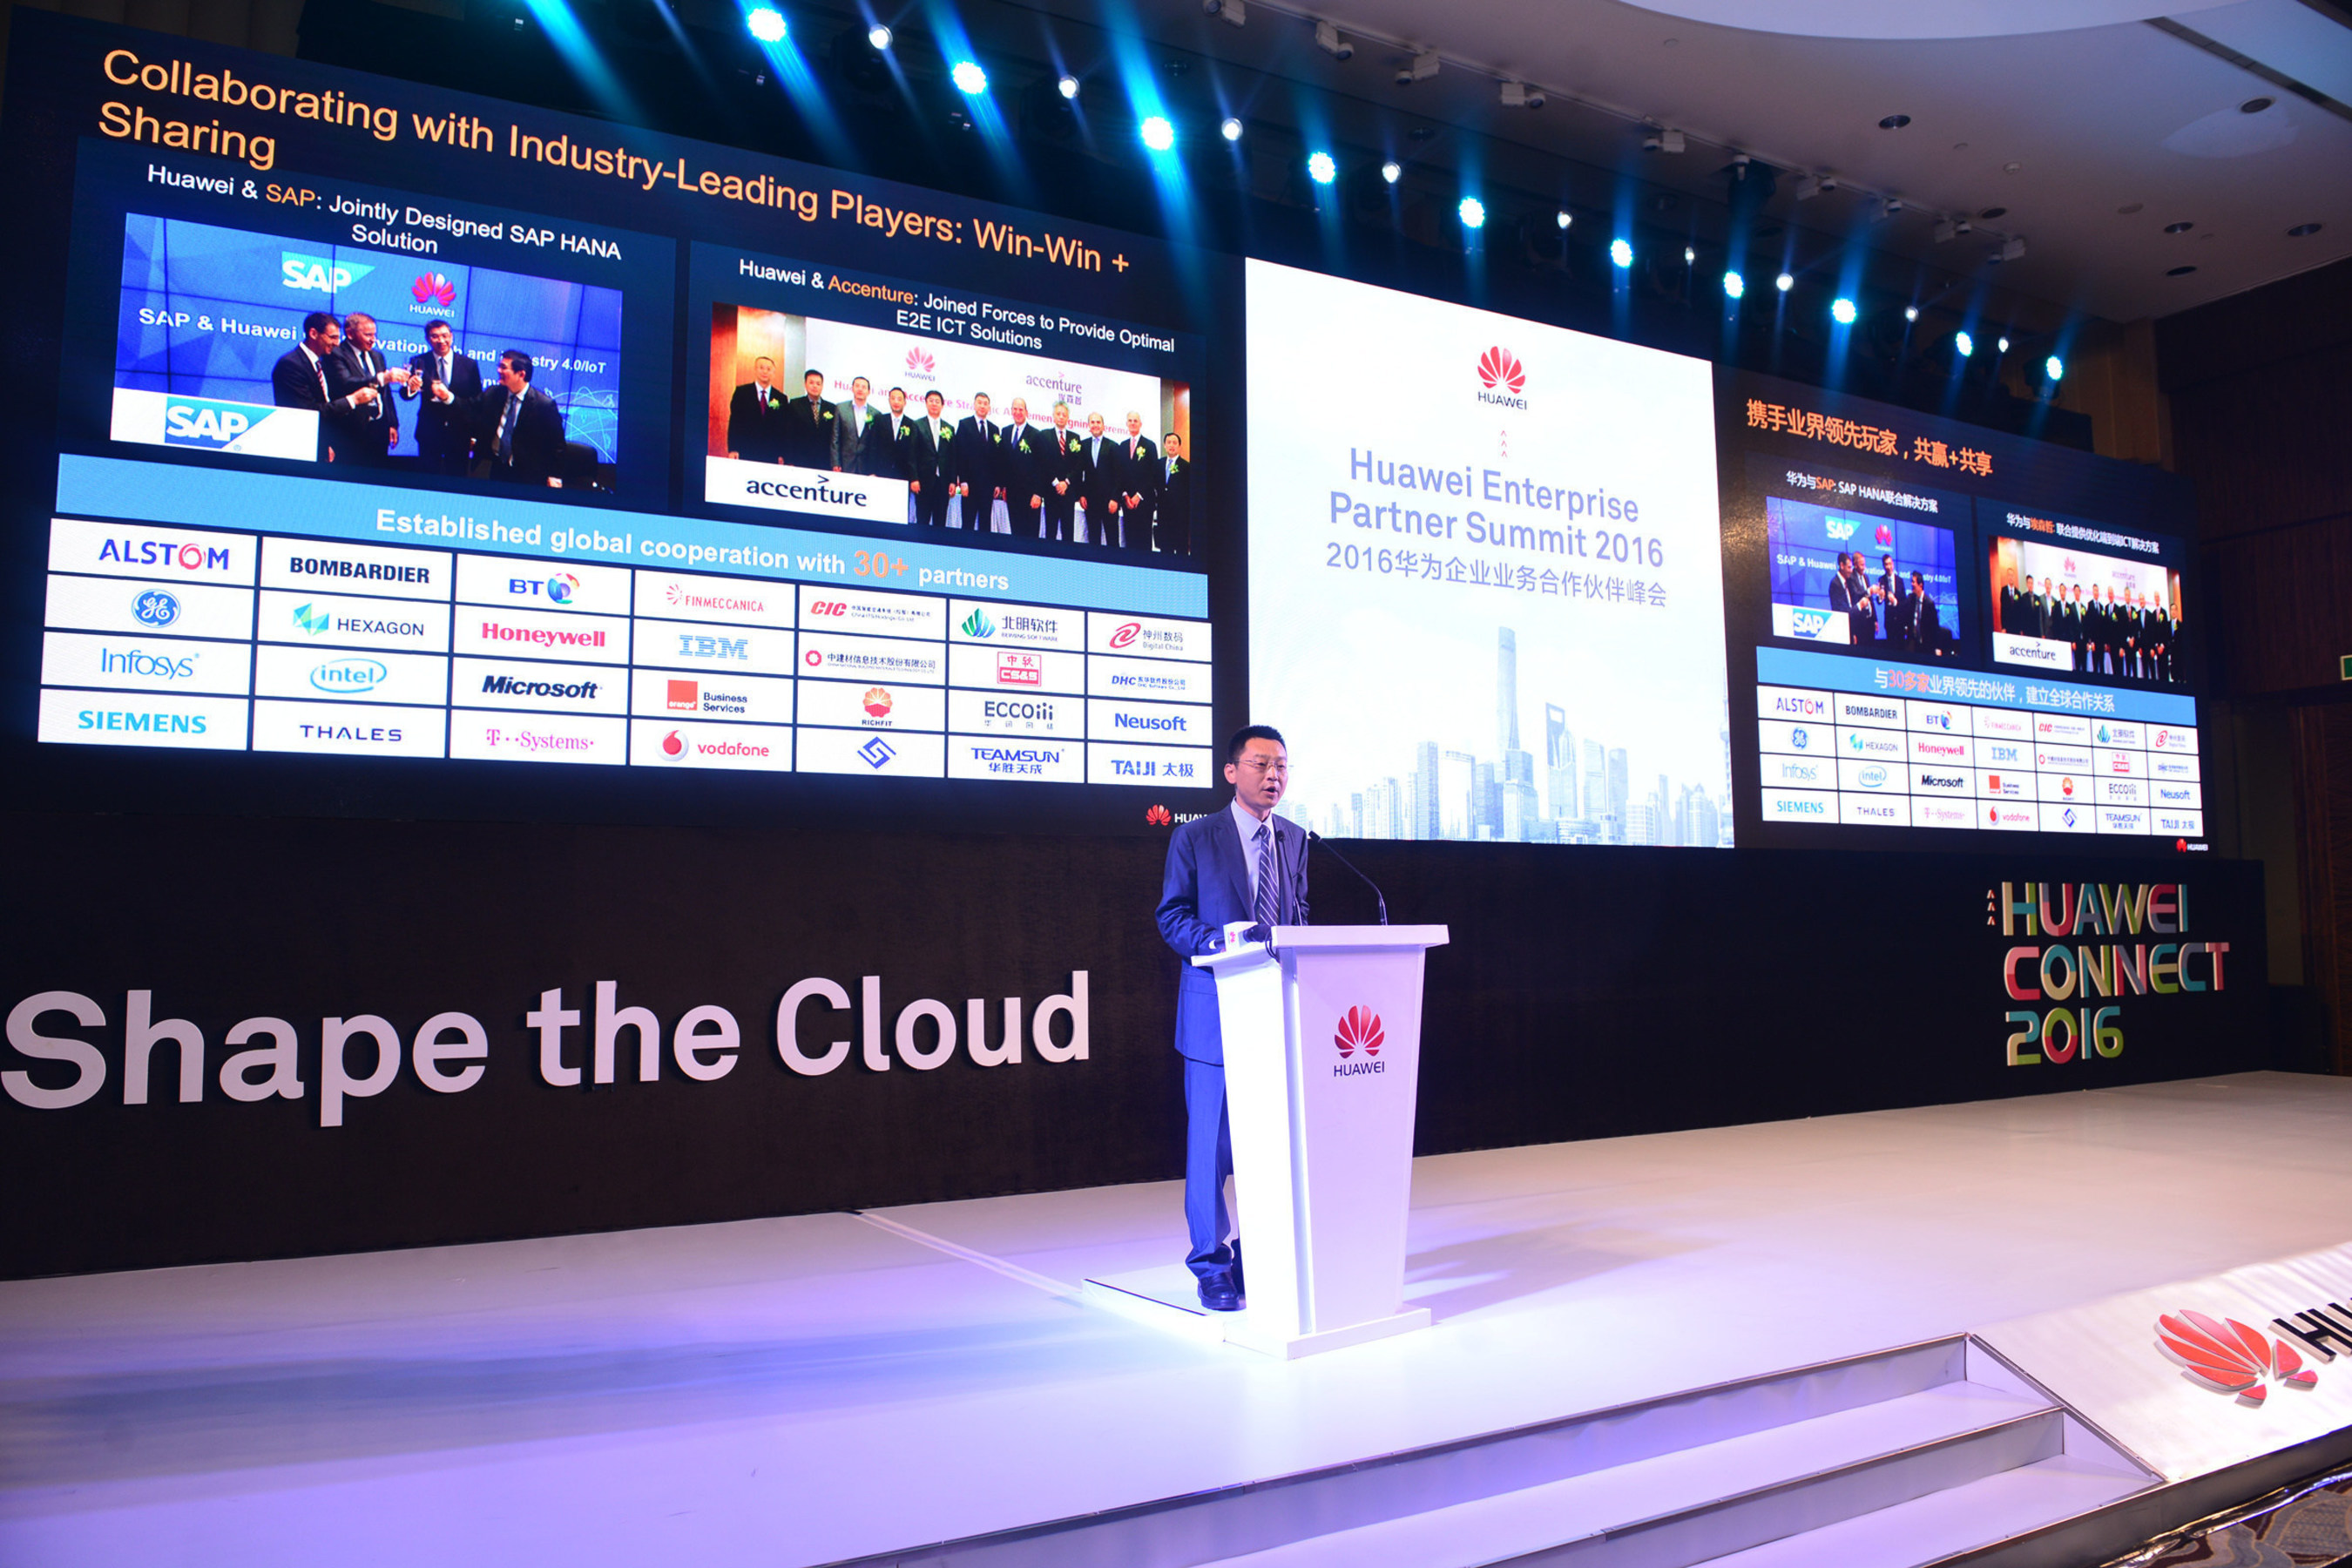 Ma Yue, Vice President of the Huawei Enterprise Business Group, delivers a speech at the summit